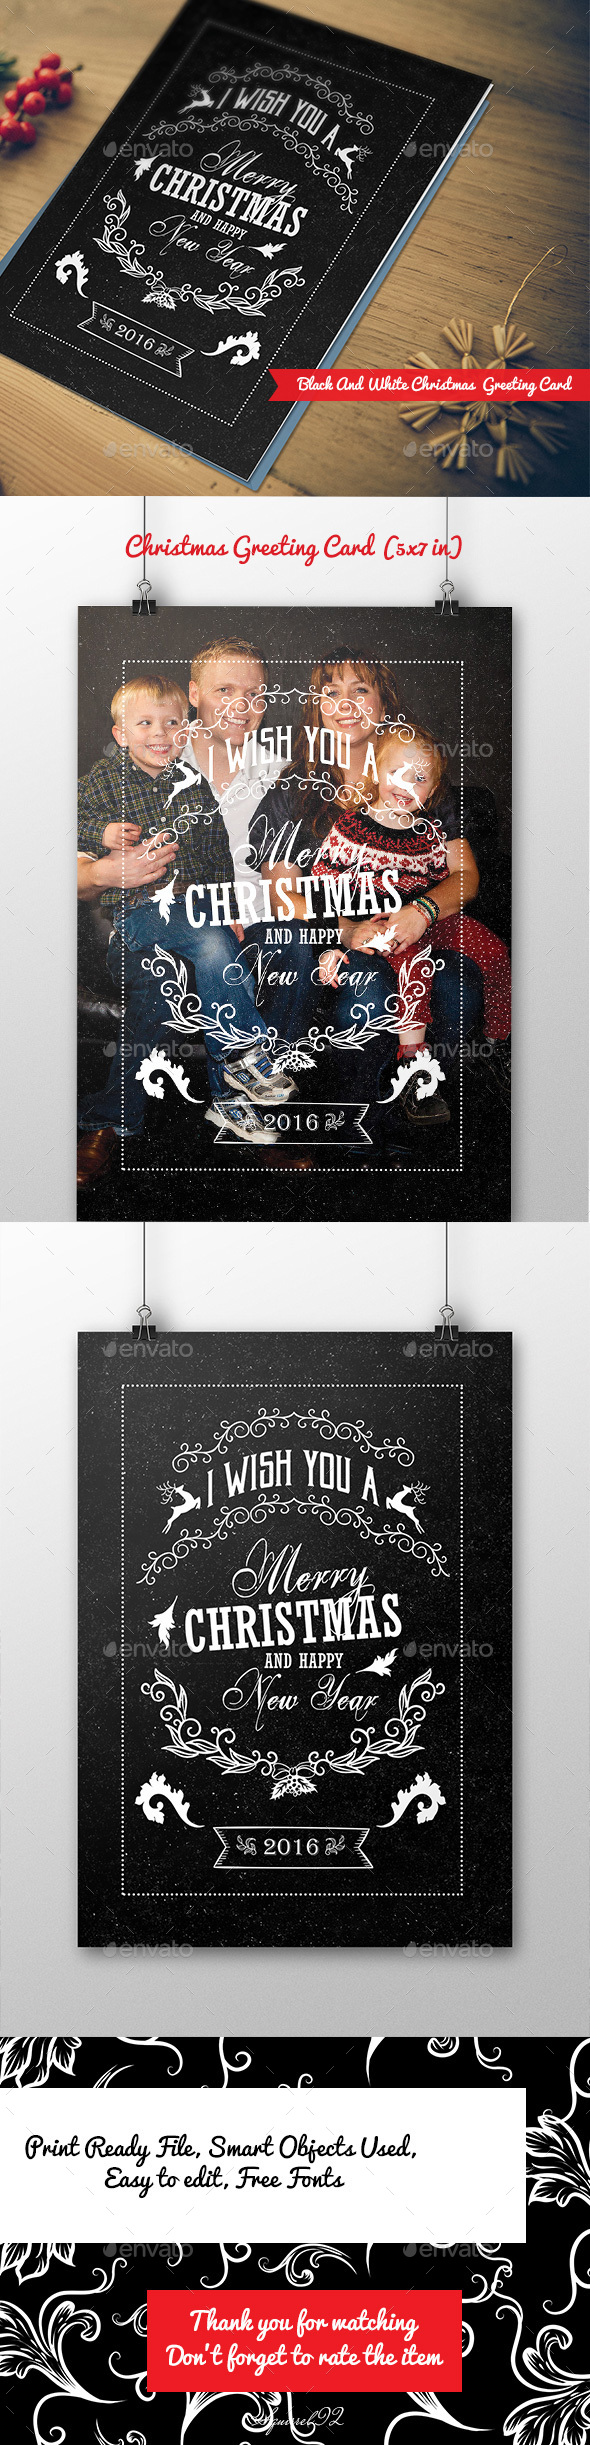 Black and White Christmas Greeting Card